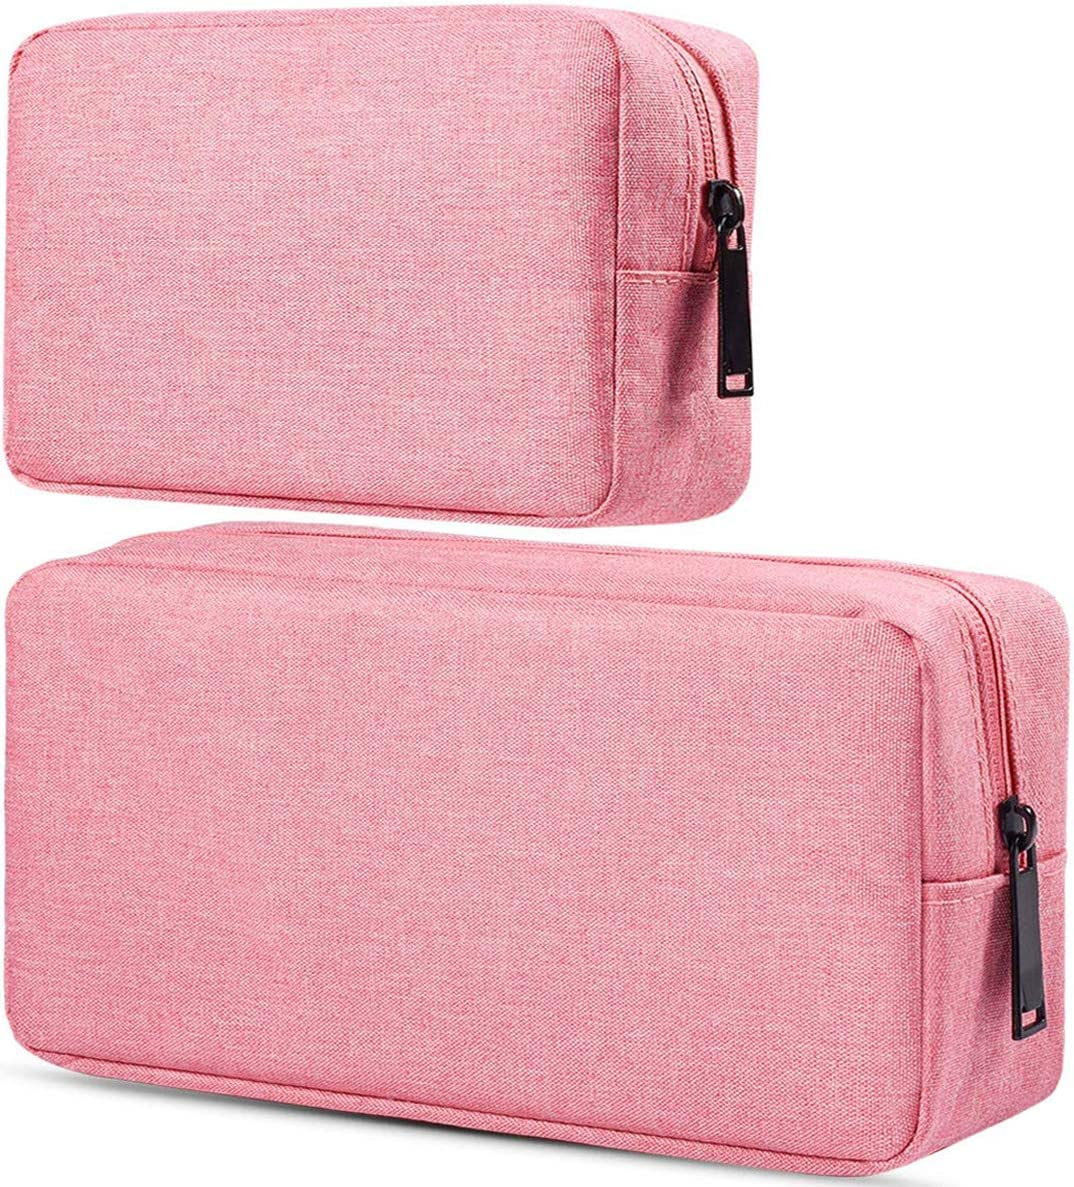 Electronic Accessories Travel Organizer Case,Universal Electronics Accessories Storage Bag Compatible Laptop Charger Various USB,Cables,Mouse, Cords and Power Travel Gadget Carry Bag, Pink (Small+Big)